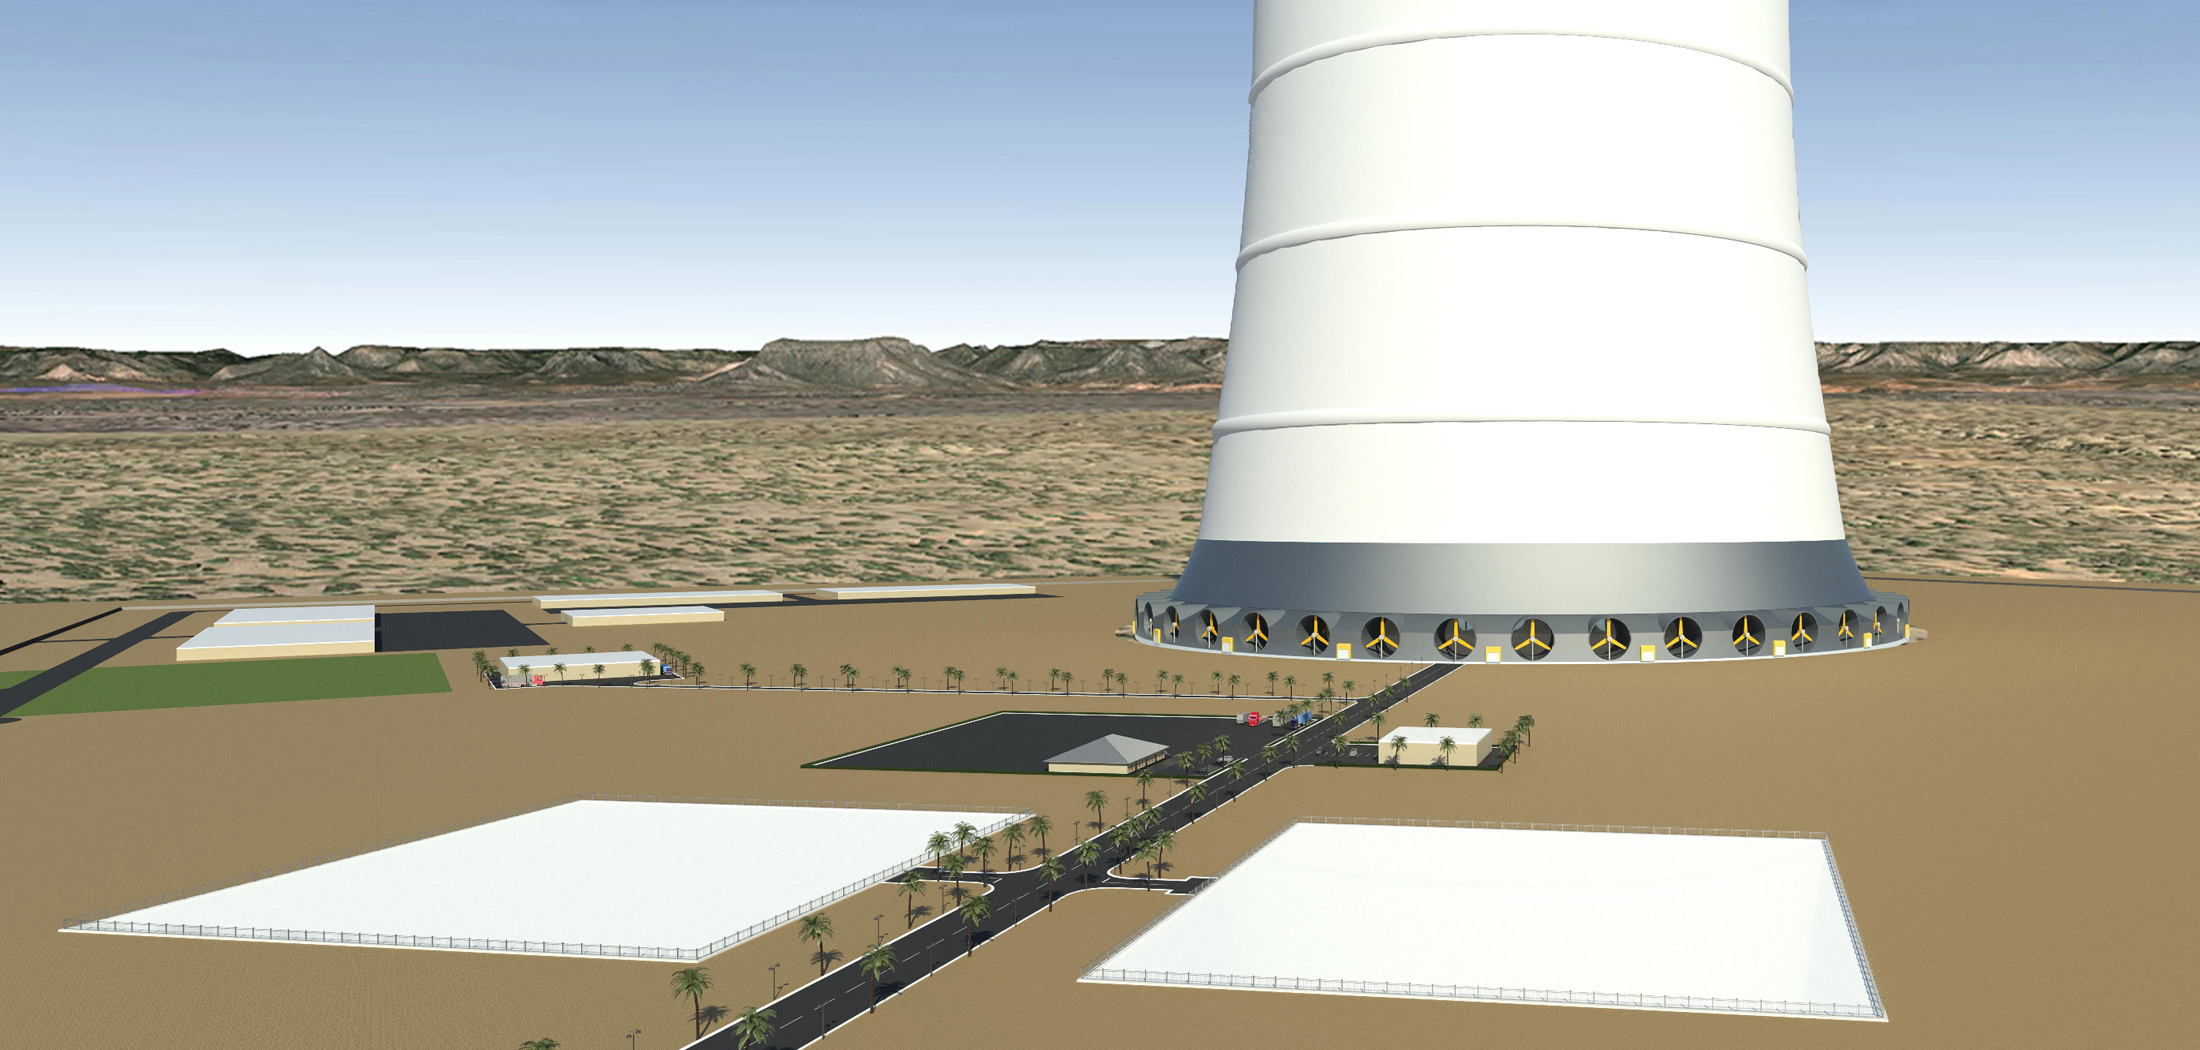 2250 ft tall hybrid solar-wind energy tower is slated for development on a site in San Luis, Arizona.